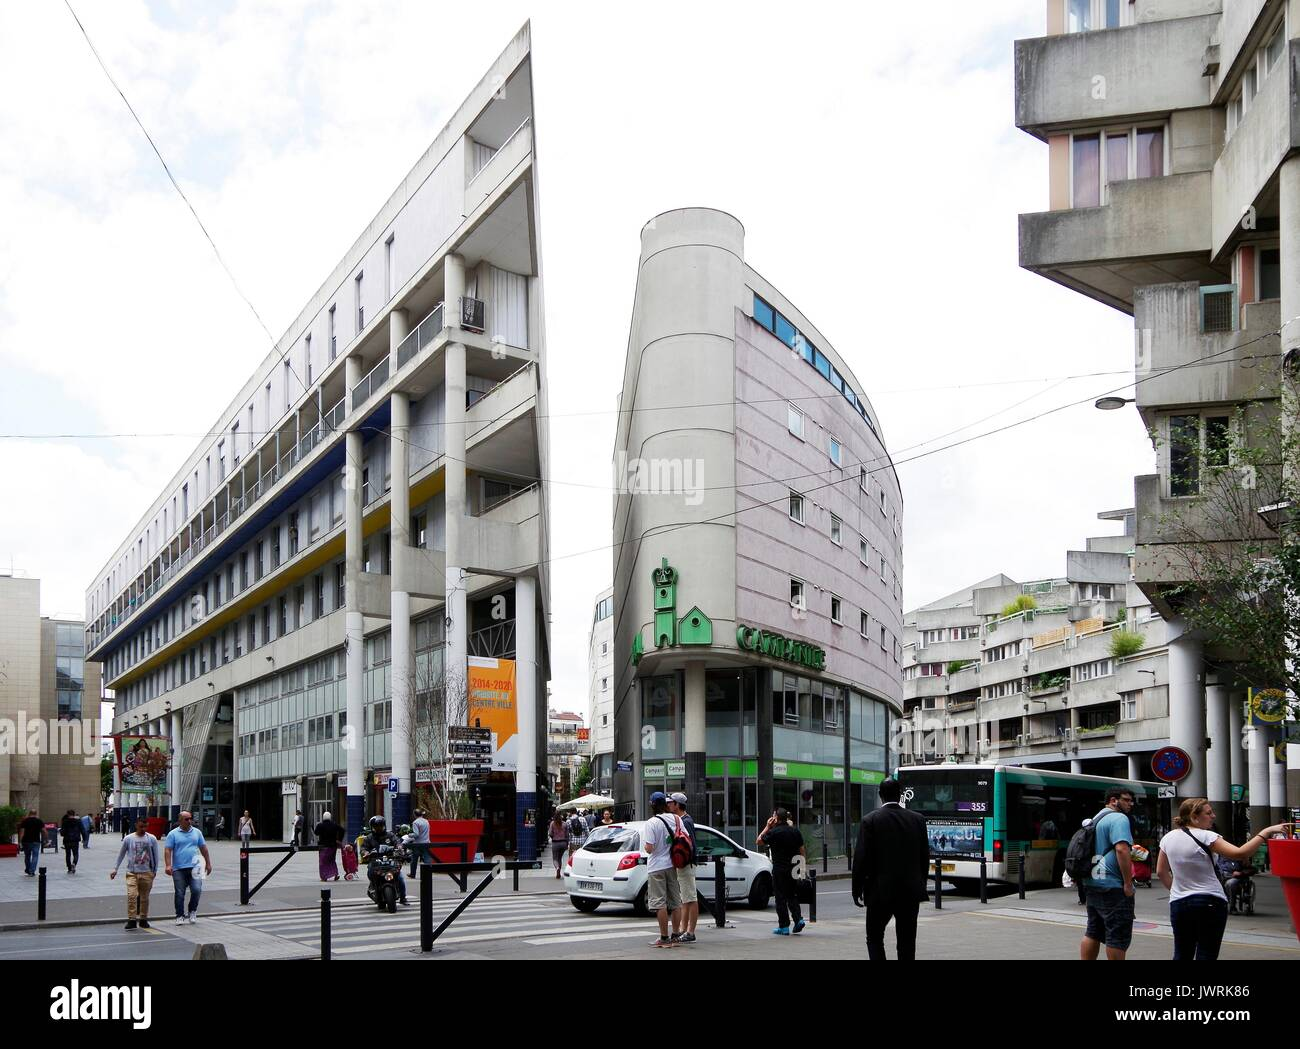 Centre Commercial, shopping area, and social housing, in the heart of St Denis, just north of , & contiguous with Paris, a bustling area - Stock Image